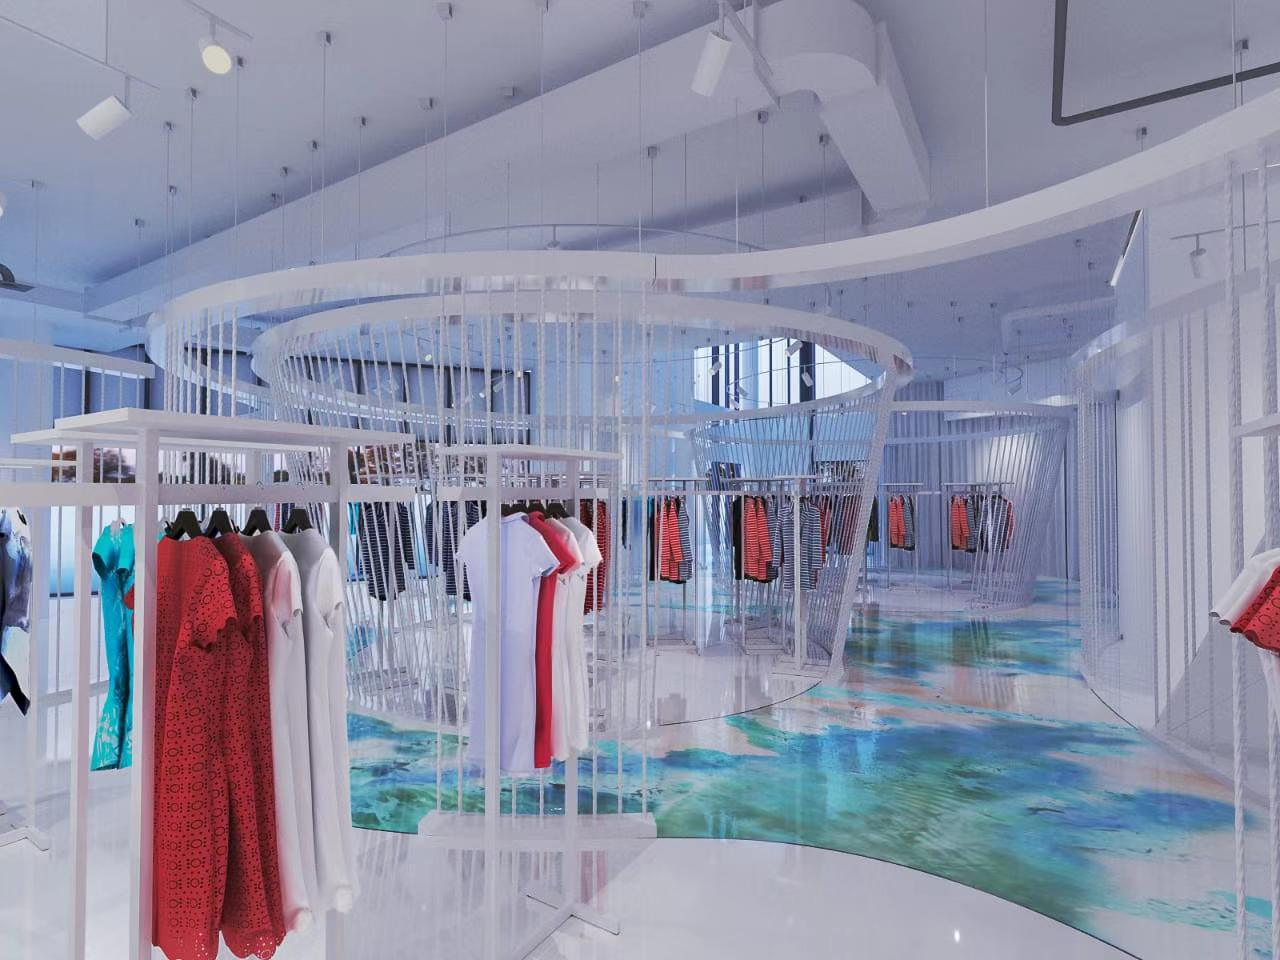 "1422"" A 40 million dirhams READY COUTURE STORE TO LAUNCH IN"